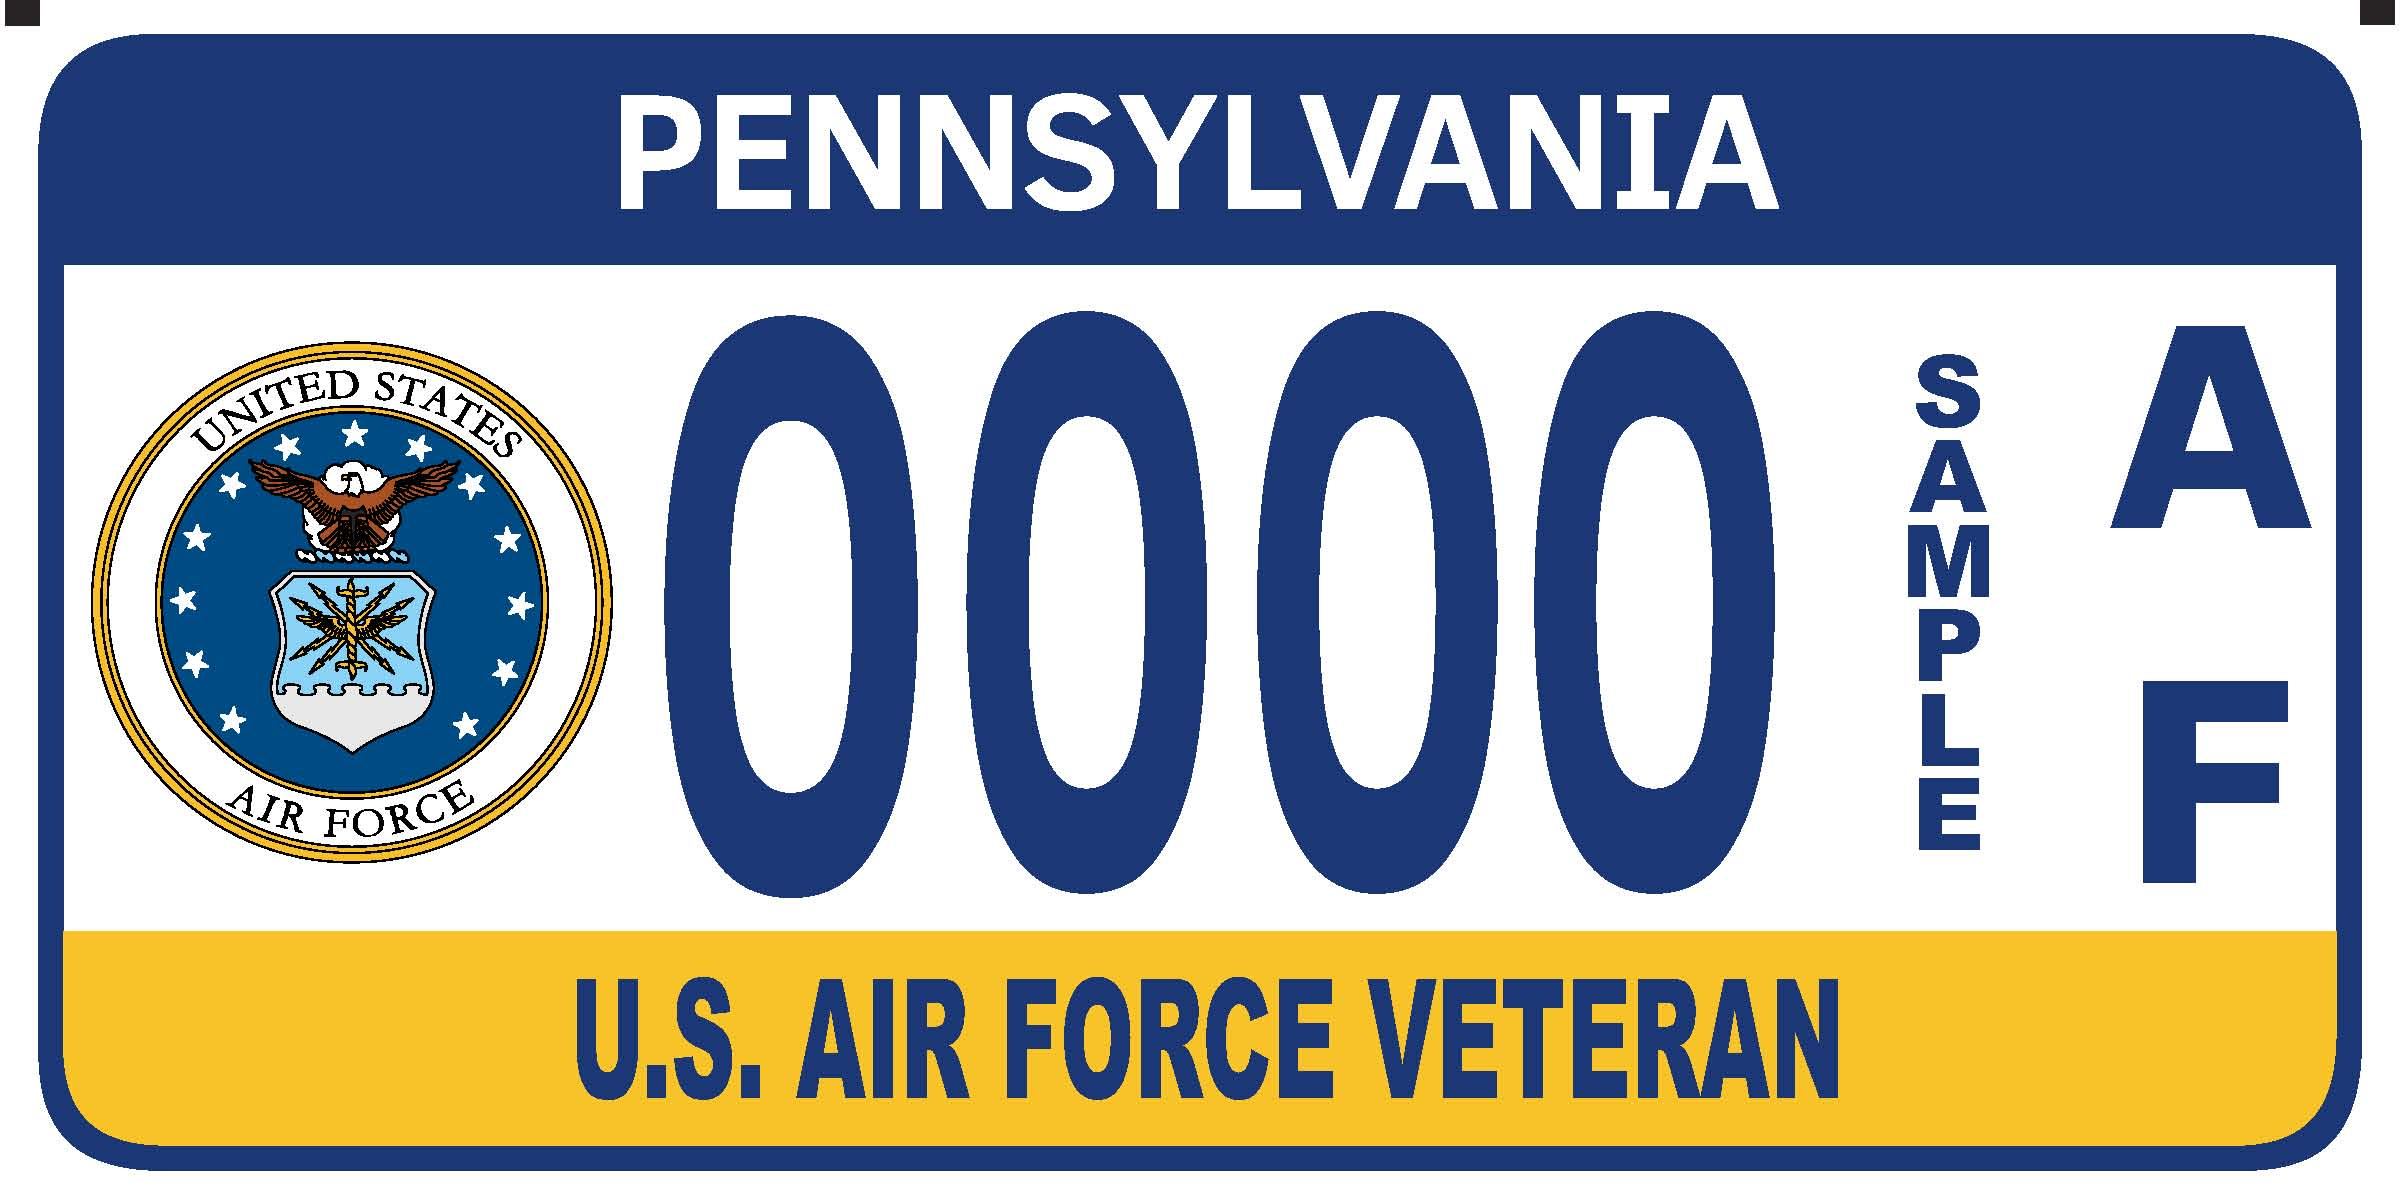 U.S. Air Force Veteran plate